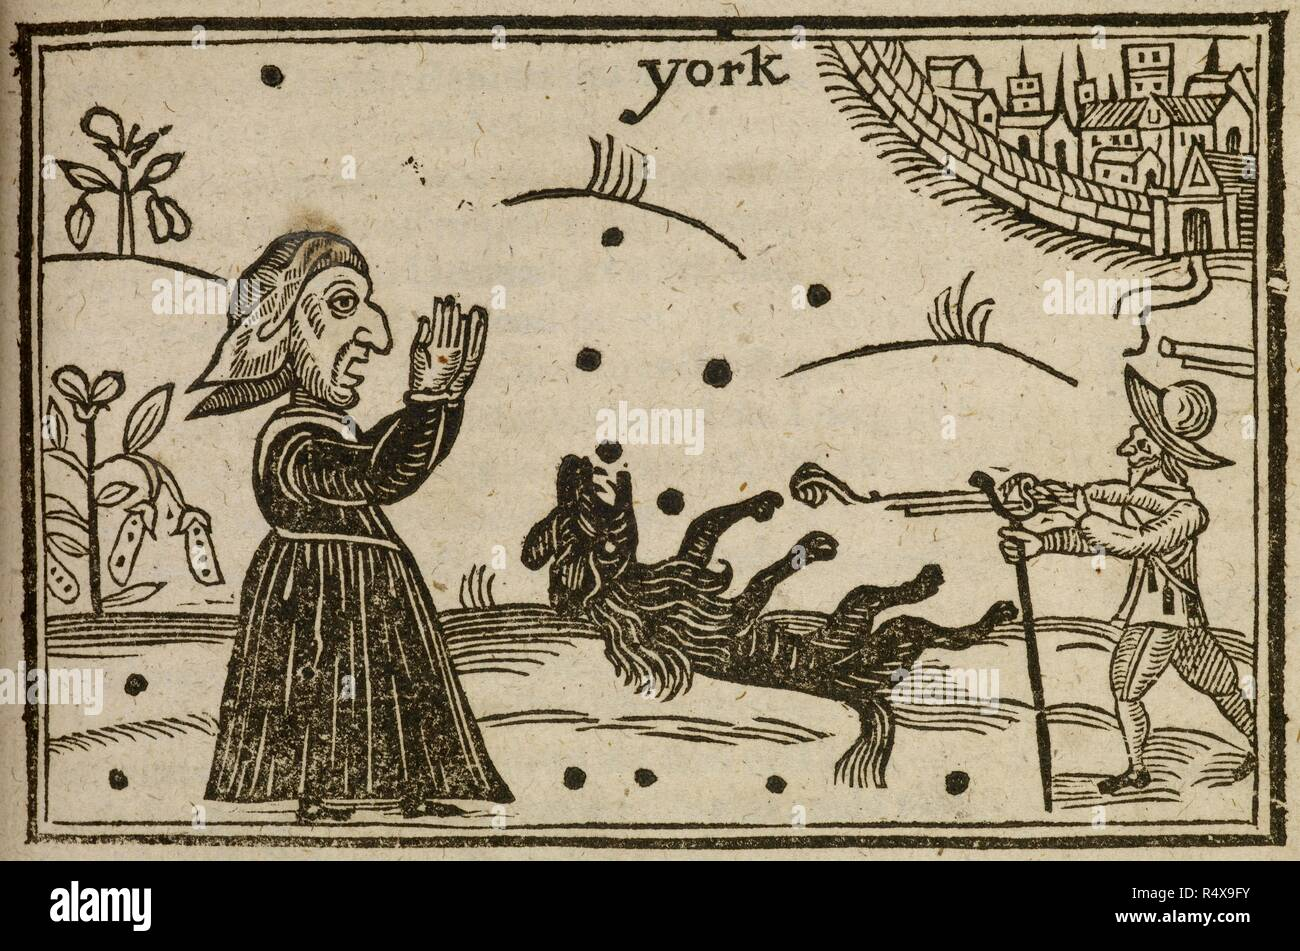 The killing of Prince Rupert's dog, named 'Boy', during the battle of Marston Moor, during the English civil war. A dog's elegy, or Rupert's tears for the late defeat at Marston-Moore ... London, July 27, 1644. A woodcut showing a witch, a cavalier and Prince Rupert's dog. Image taken from: A Dog's Elegy, or Rupert's tears for the late defeat at Marston-Moore, ... where his beloved dog, named Boy, was killed by a valliant souldier, who had skill in necromancy. Likewise the strange breed of this shagg'd cavalier ... with all his tricks and feats. Source: E.3.(17). Language: English. Stock Photo